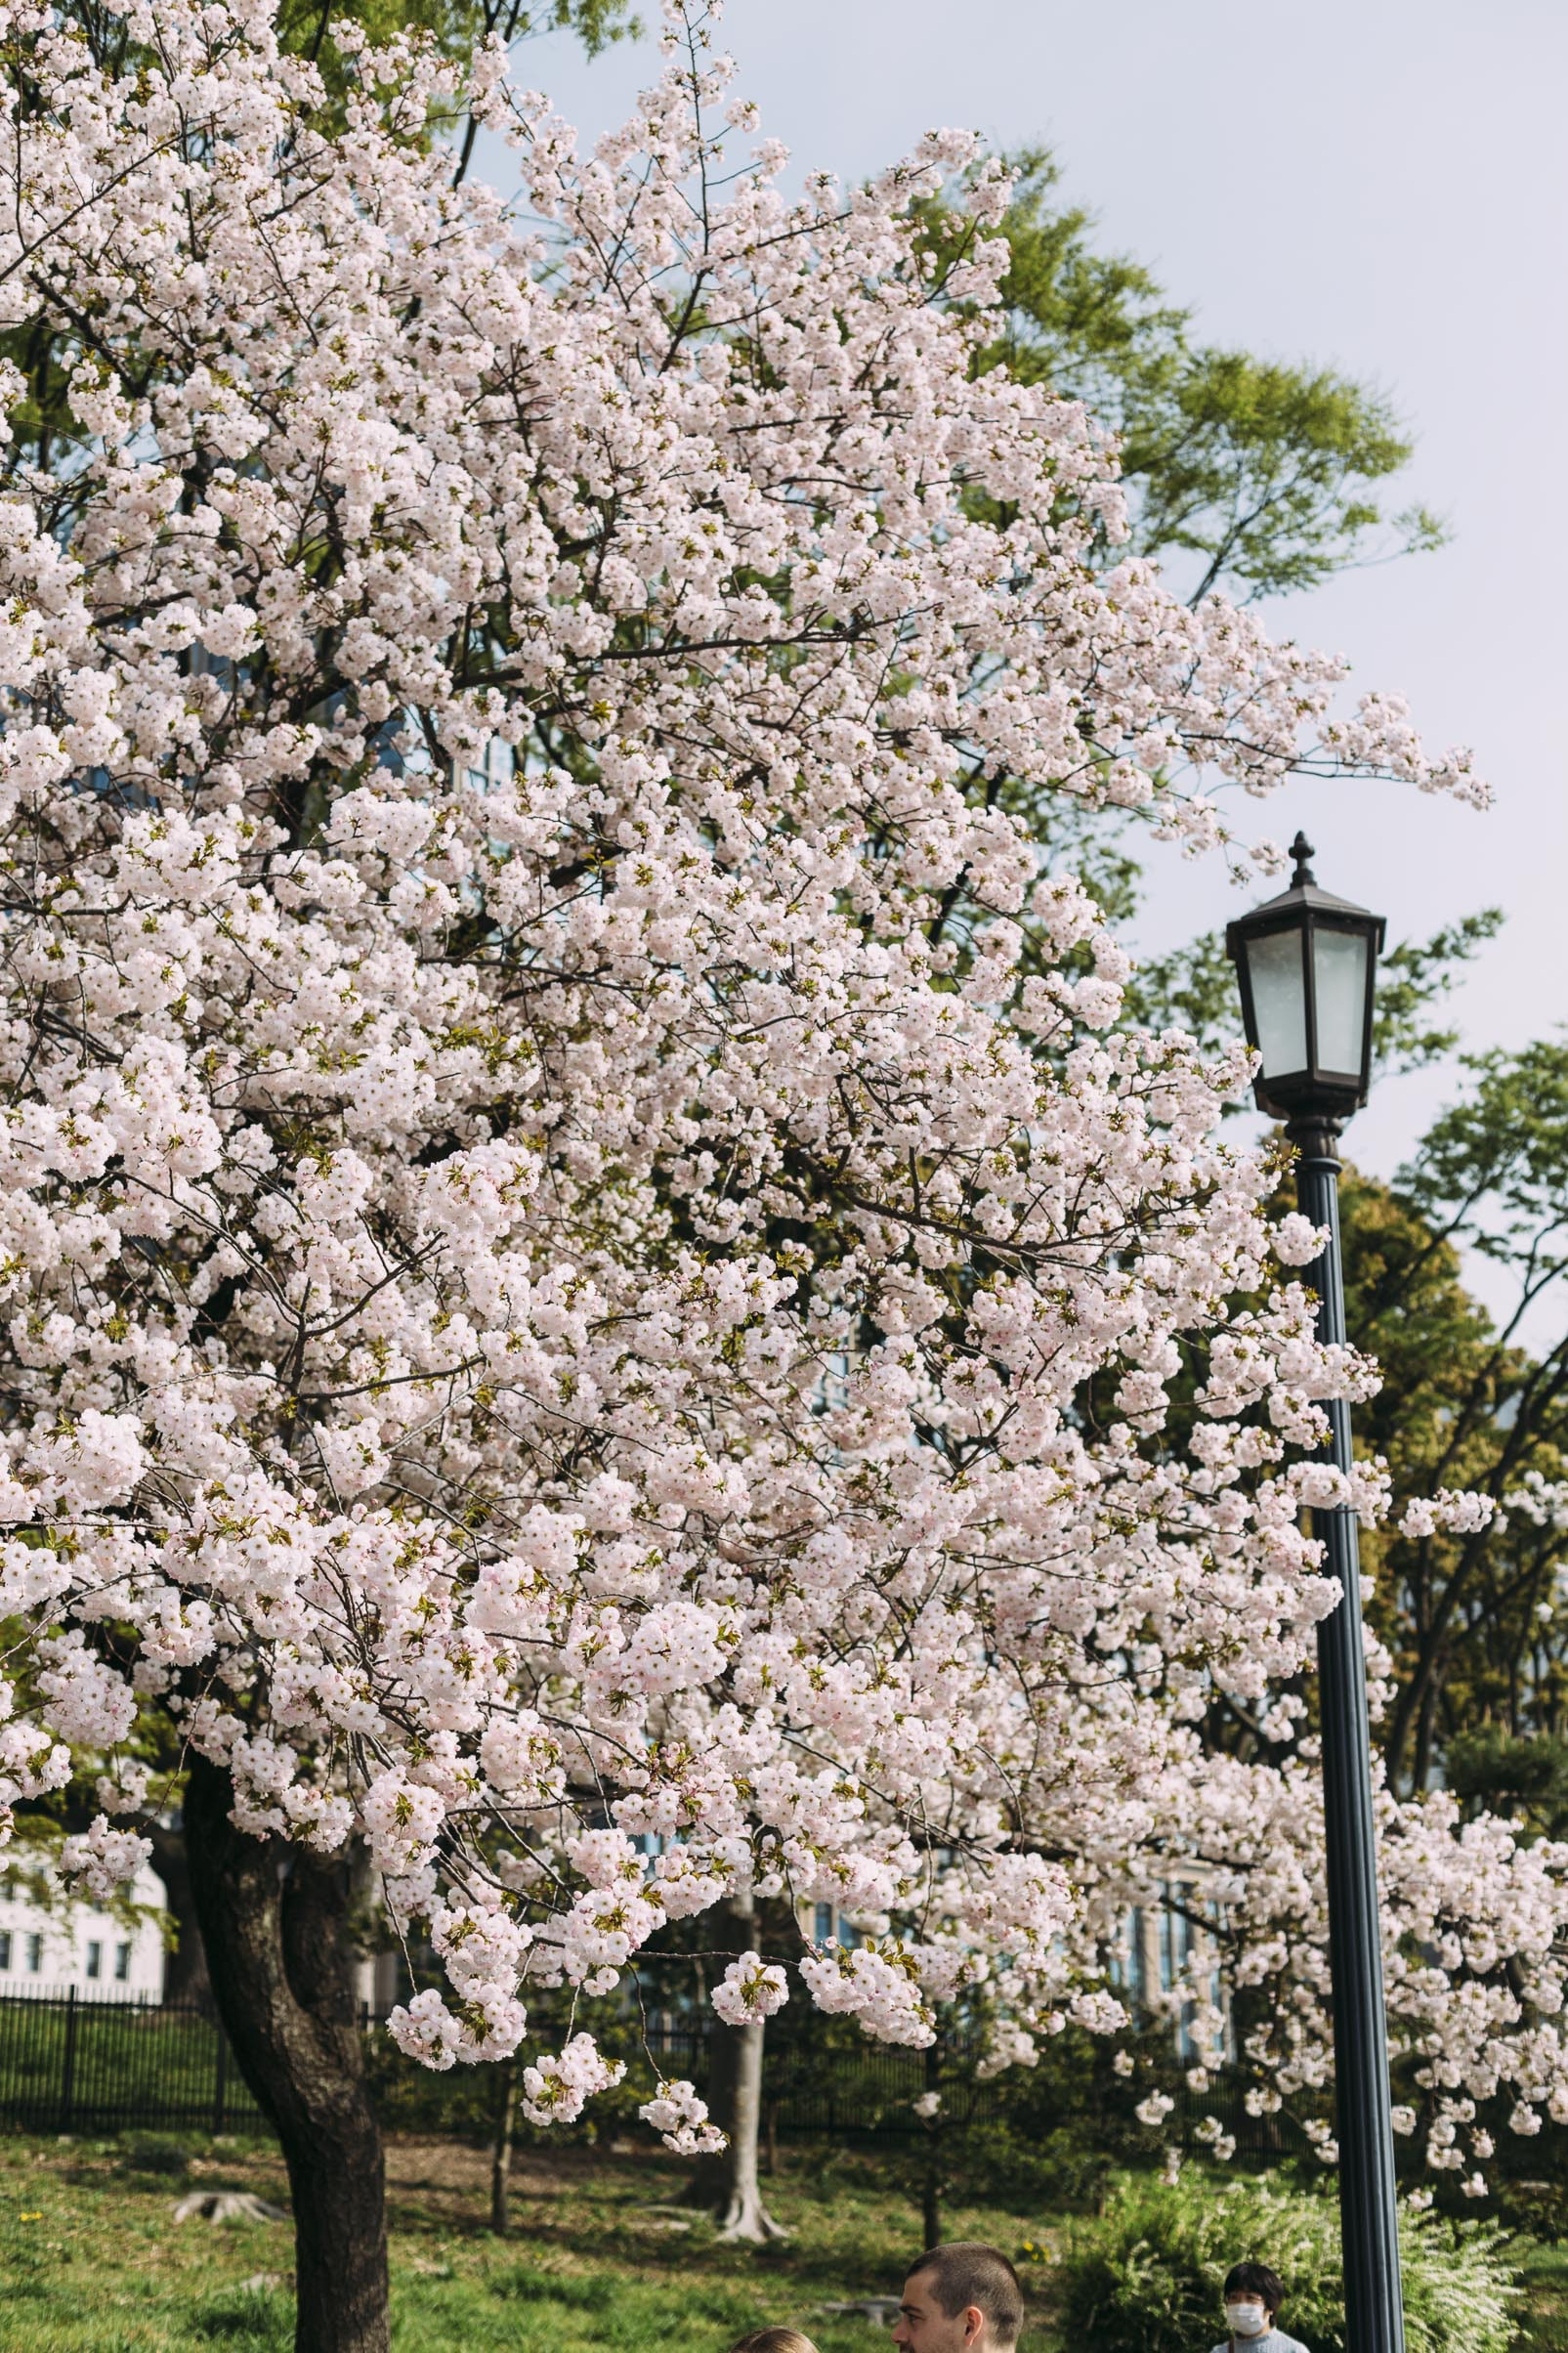 light post beside cherry blossom tree